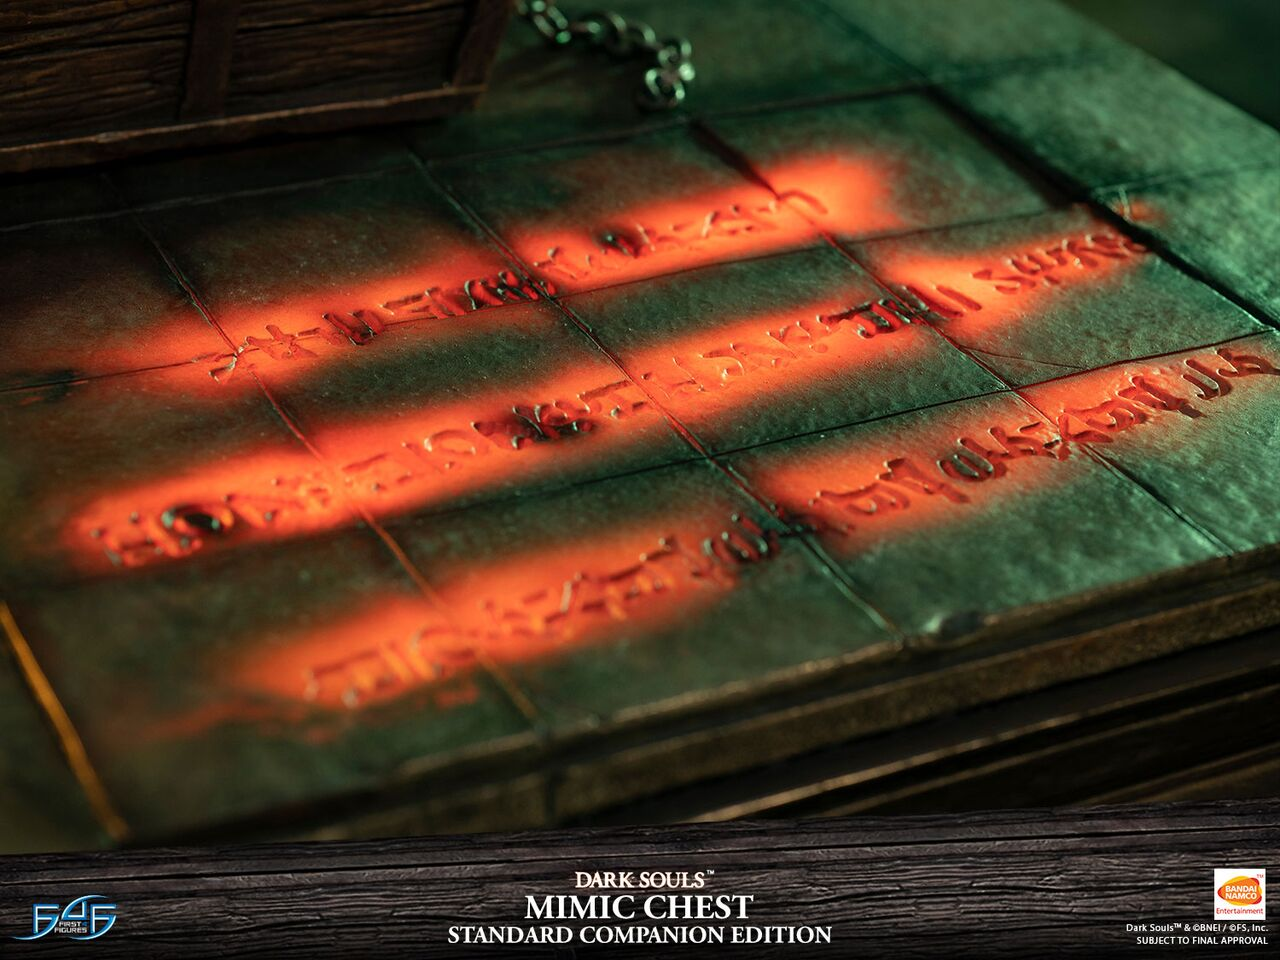 Mimic Chest (Standard Companion Edition)